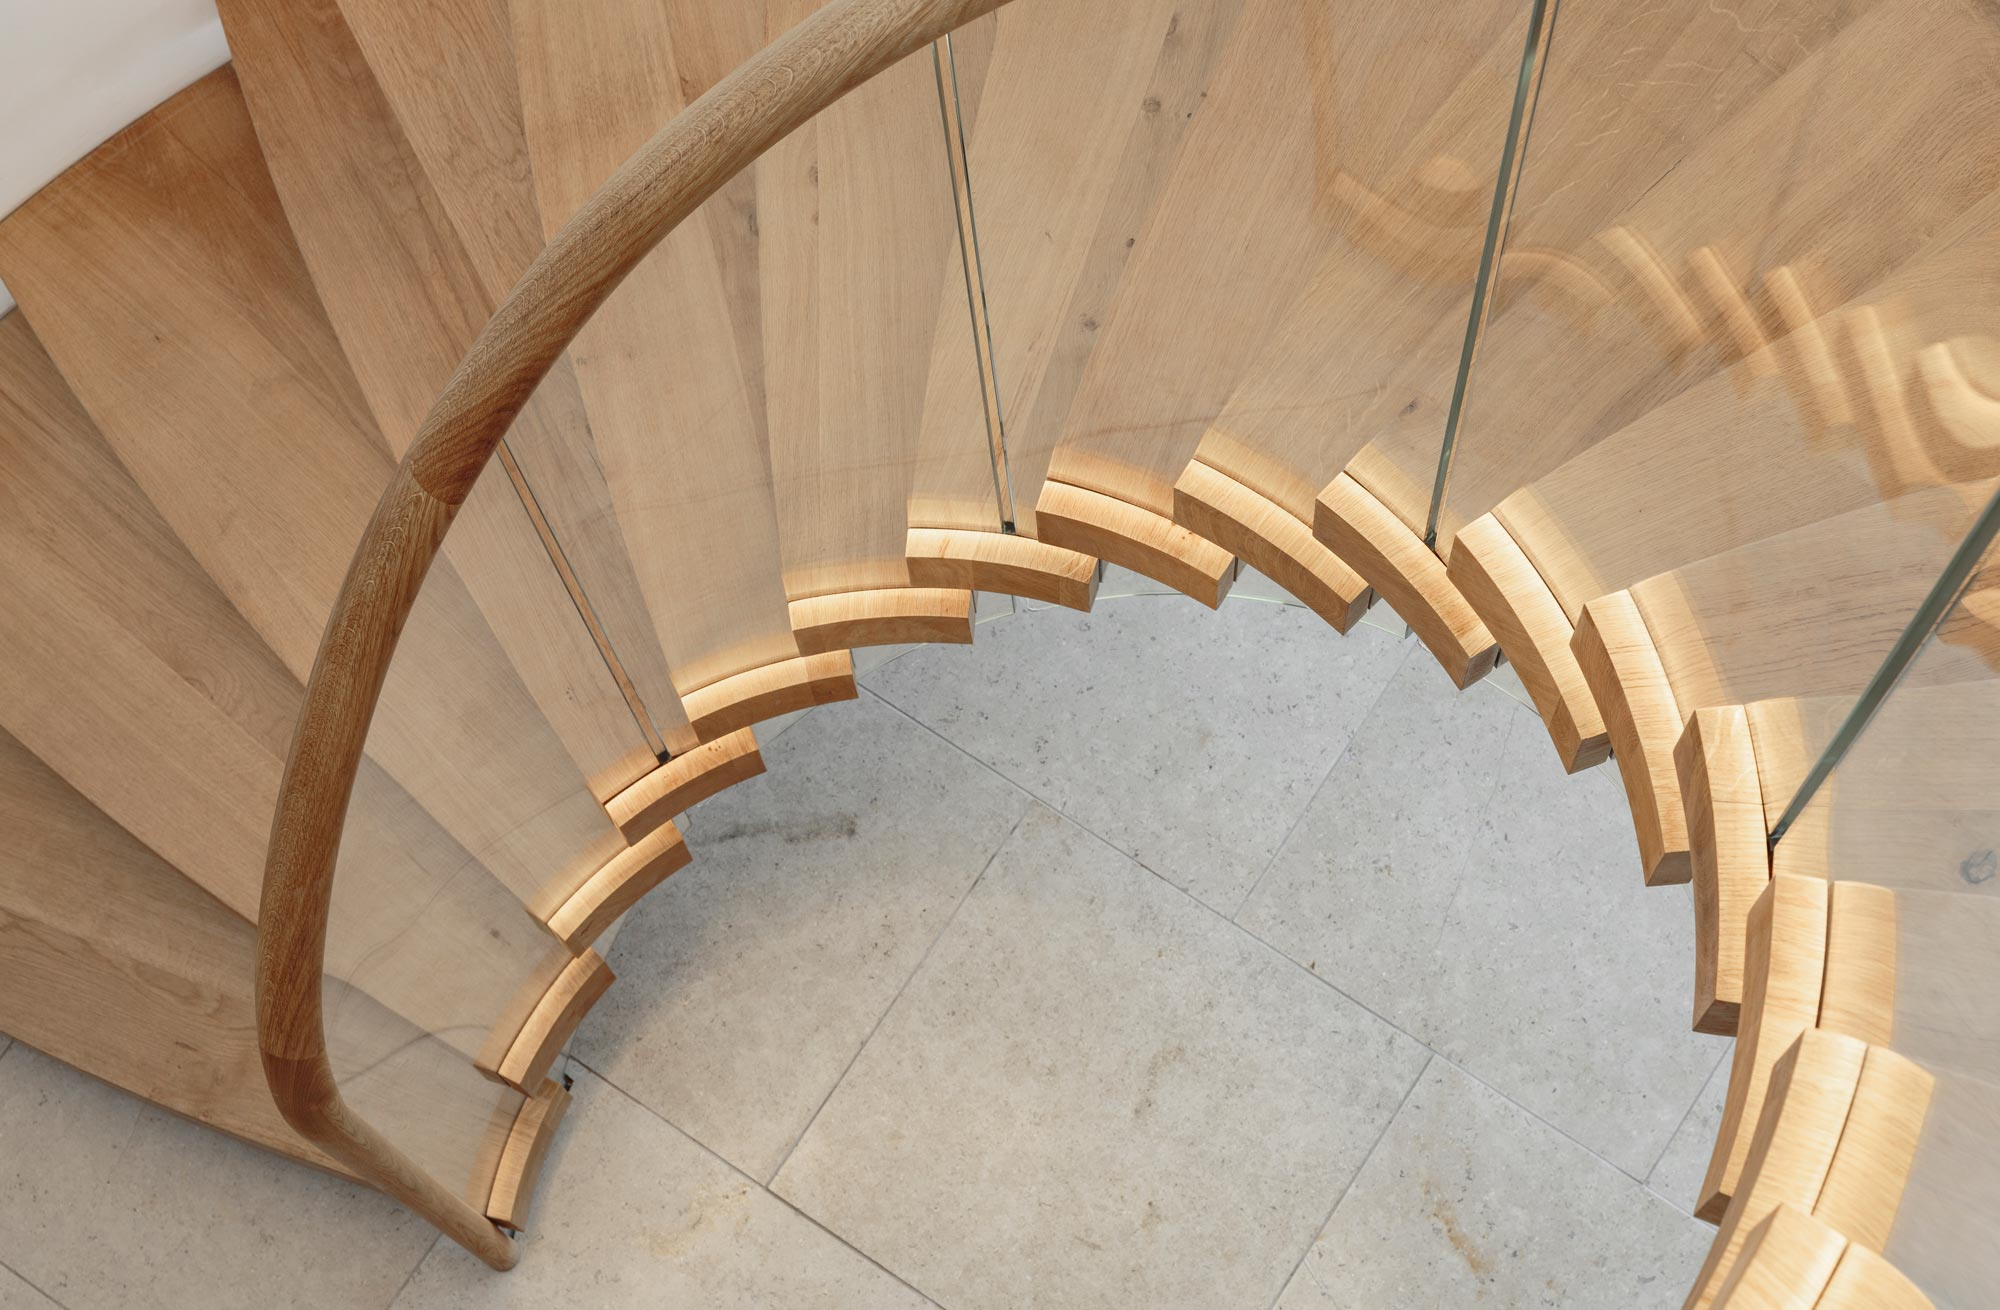 Helical Bisca staircase with stair lighting under the handrail